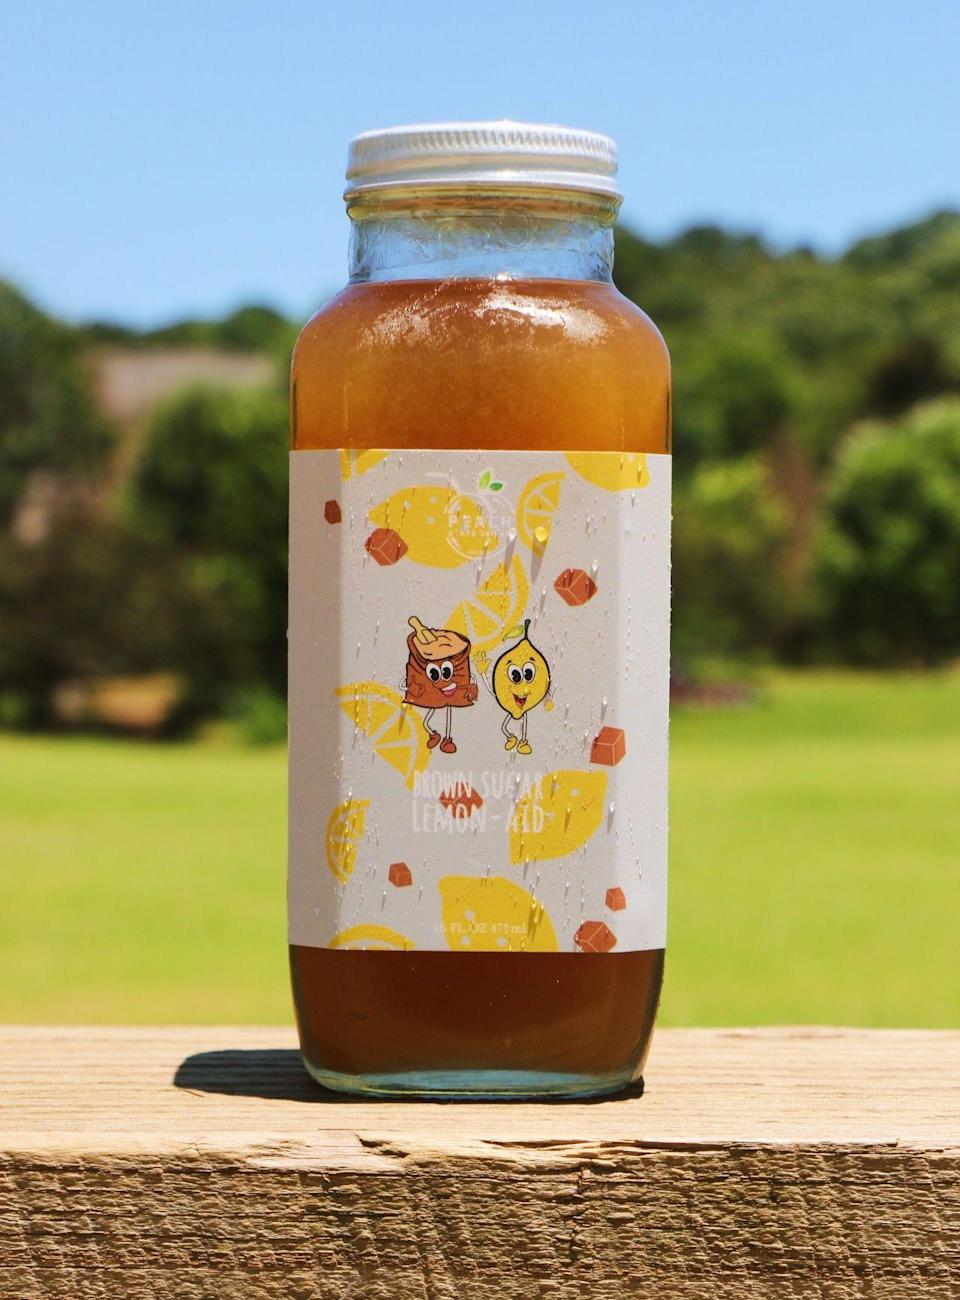 """<p><strong>Original Brown Sugar Lemon-Aid</strong></p><p>peachstatedrinks.com</p><p><strong>$65.50</strong></p><p><a href=""""https://www.peachstatedrinks.com/product/original-brown-sugar-lemon-aid/"""" rel=""""nofollow noopener"""" target=""""_blank"""" data-ylk=""""slk:BUY NOW"""" class=""""link rapid-noclick-resp"""">BUY NOW</a></p><p>What started as just a hobby turned into a legit business for Peach State Drinks' founders. Their line-up of brown sugar and agave-sweetened lemonades are all fresh and hand-pressed. You can sip on the Original Brown Sugar Lemon-Aid year-round, and the makers rotate other flavors seasonally (like mango and peach in the summer!).</p>"""